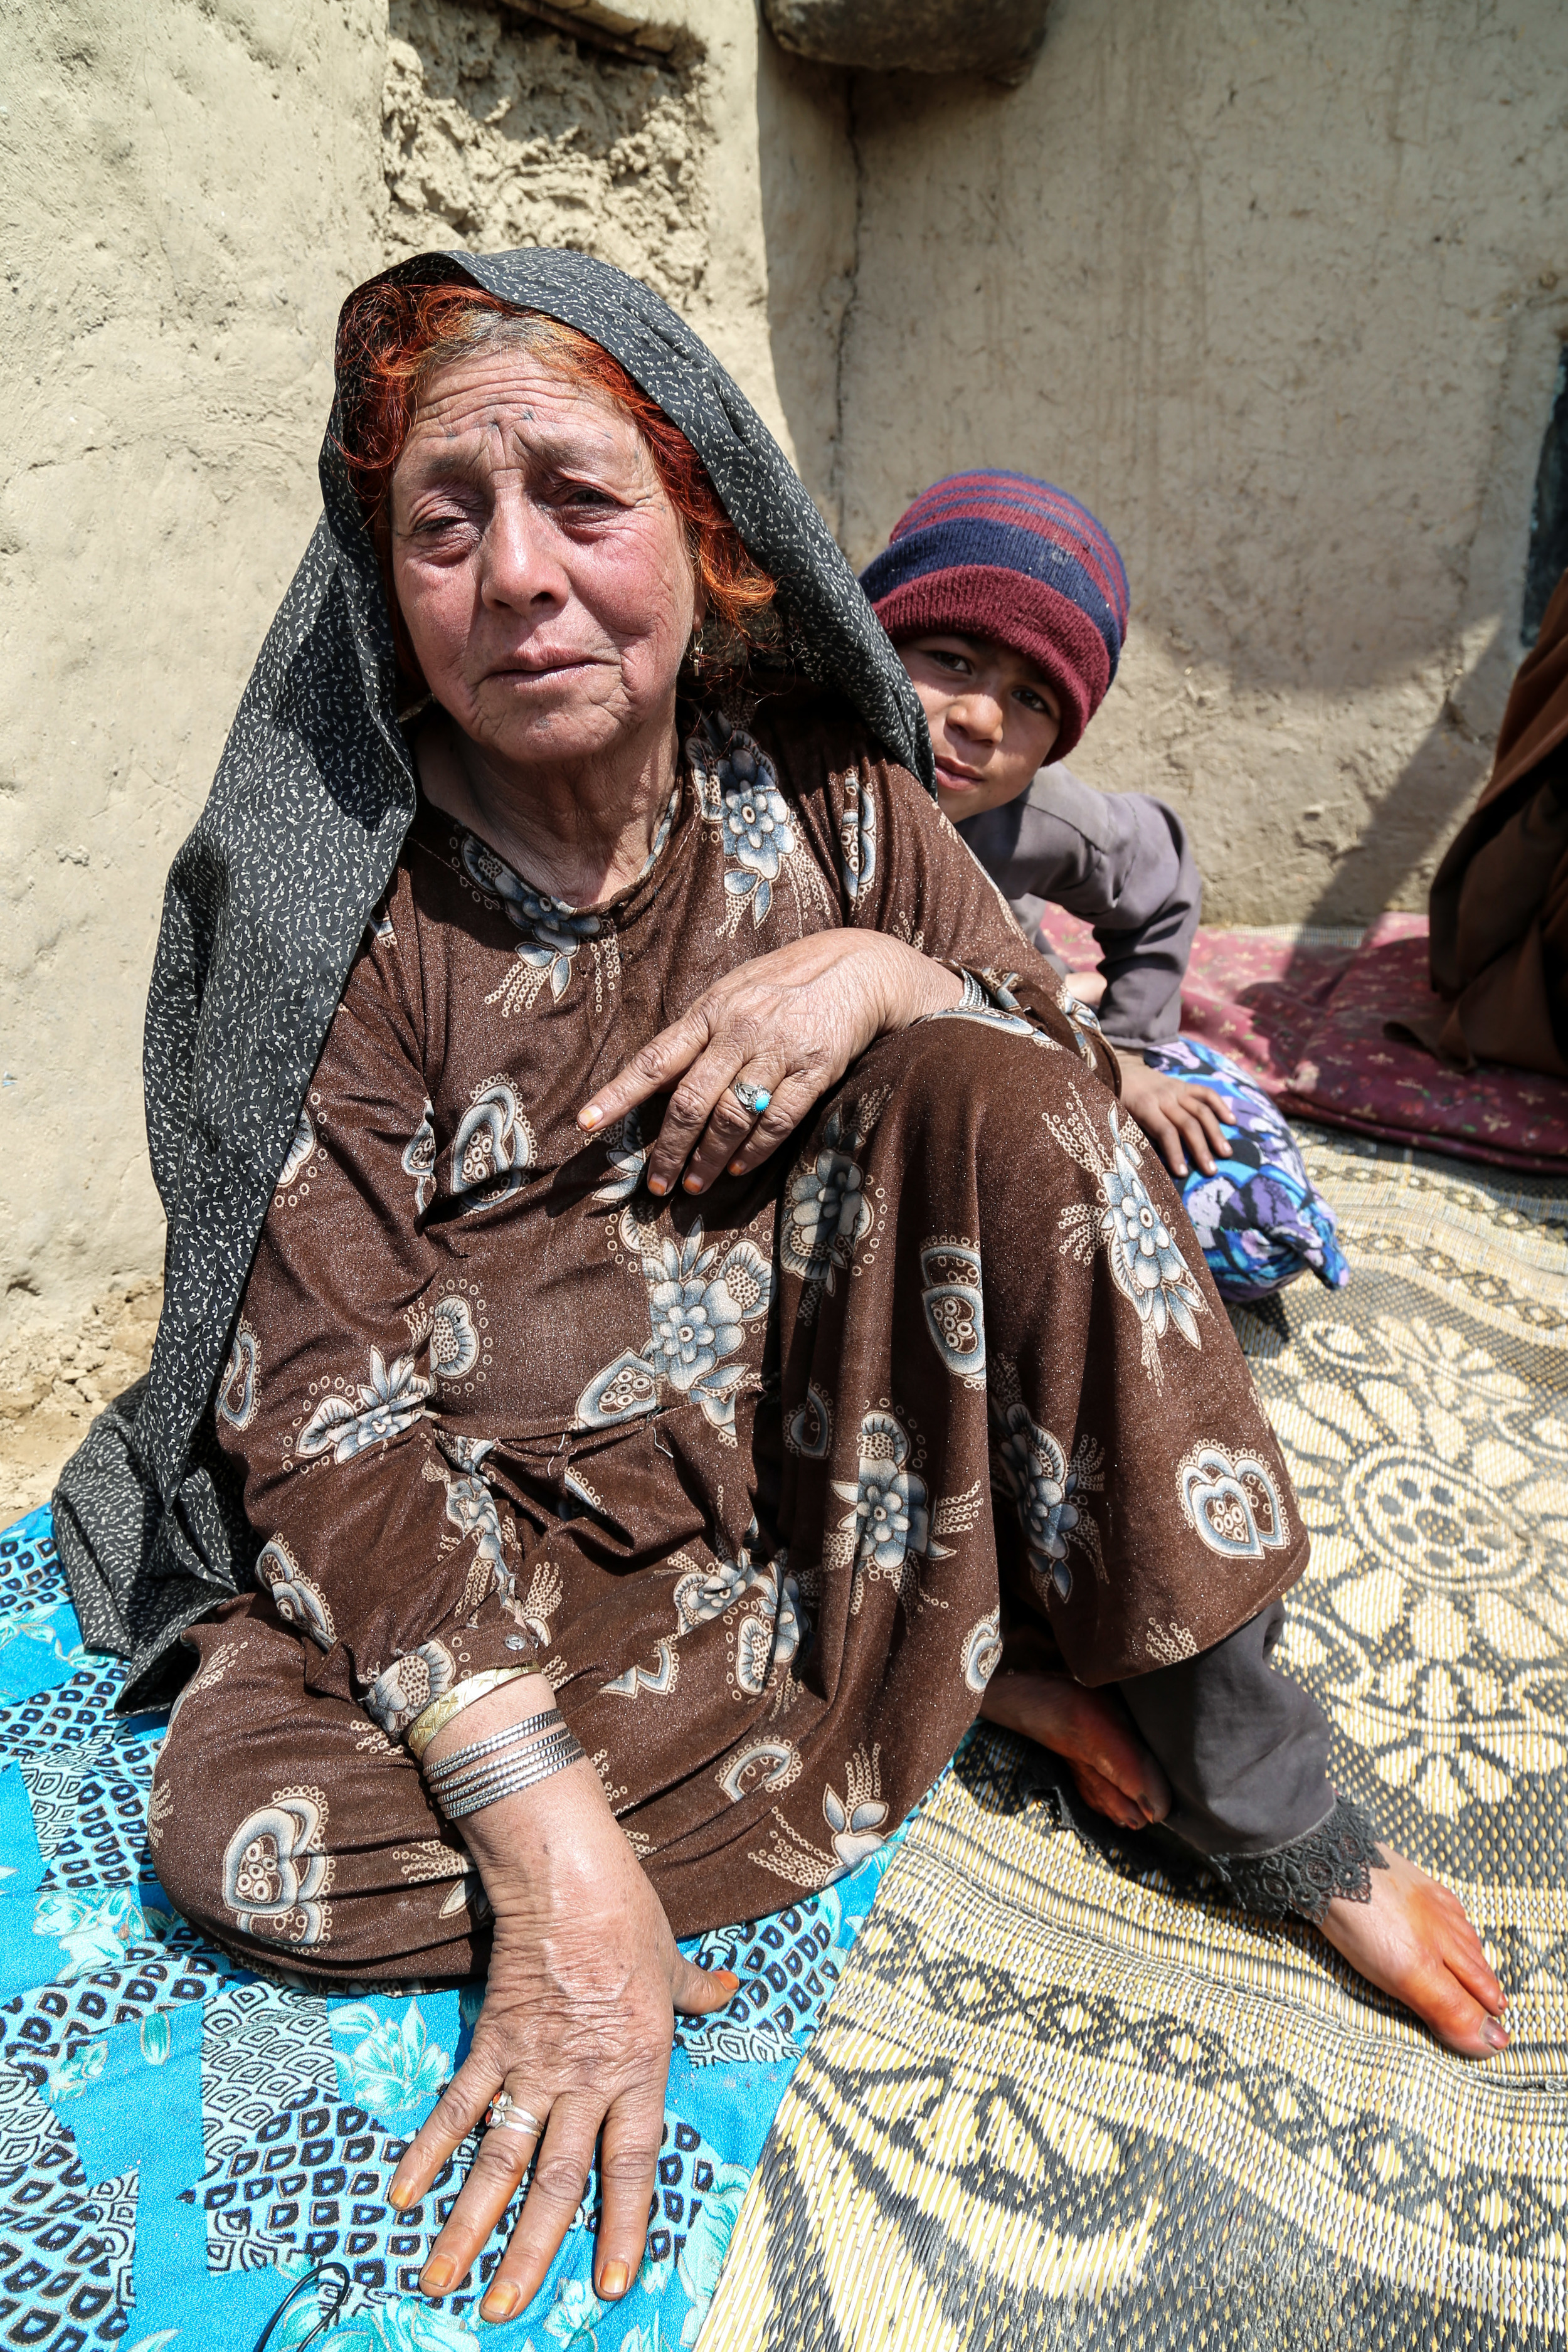 Aysha Bibi lived through many of Afghanistan's horrors: the Soviet invasion, civil war, and the Taliban. But three years ago she says that an air strike nearly wiped out her entire family. Three generations, under one roof, now gone.